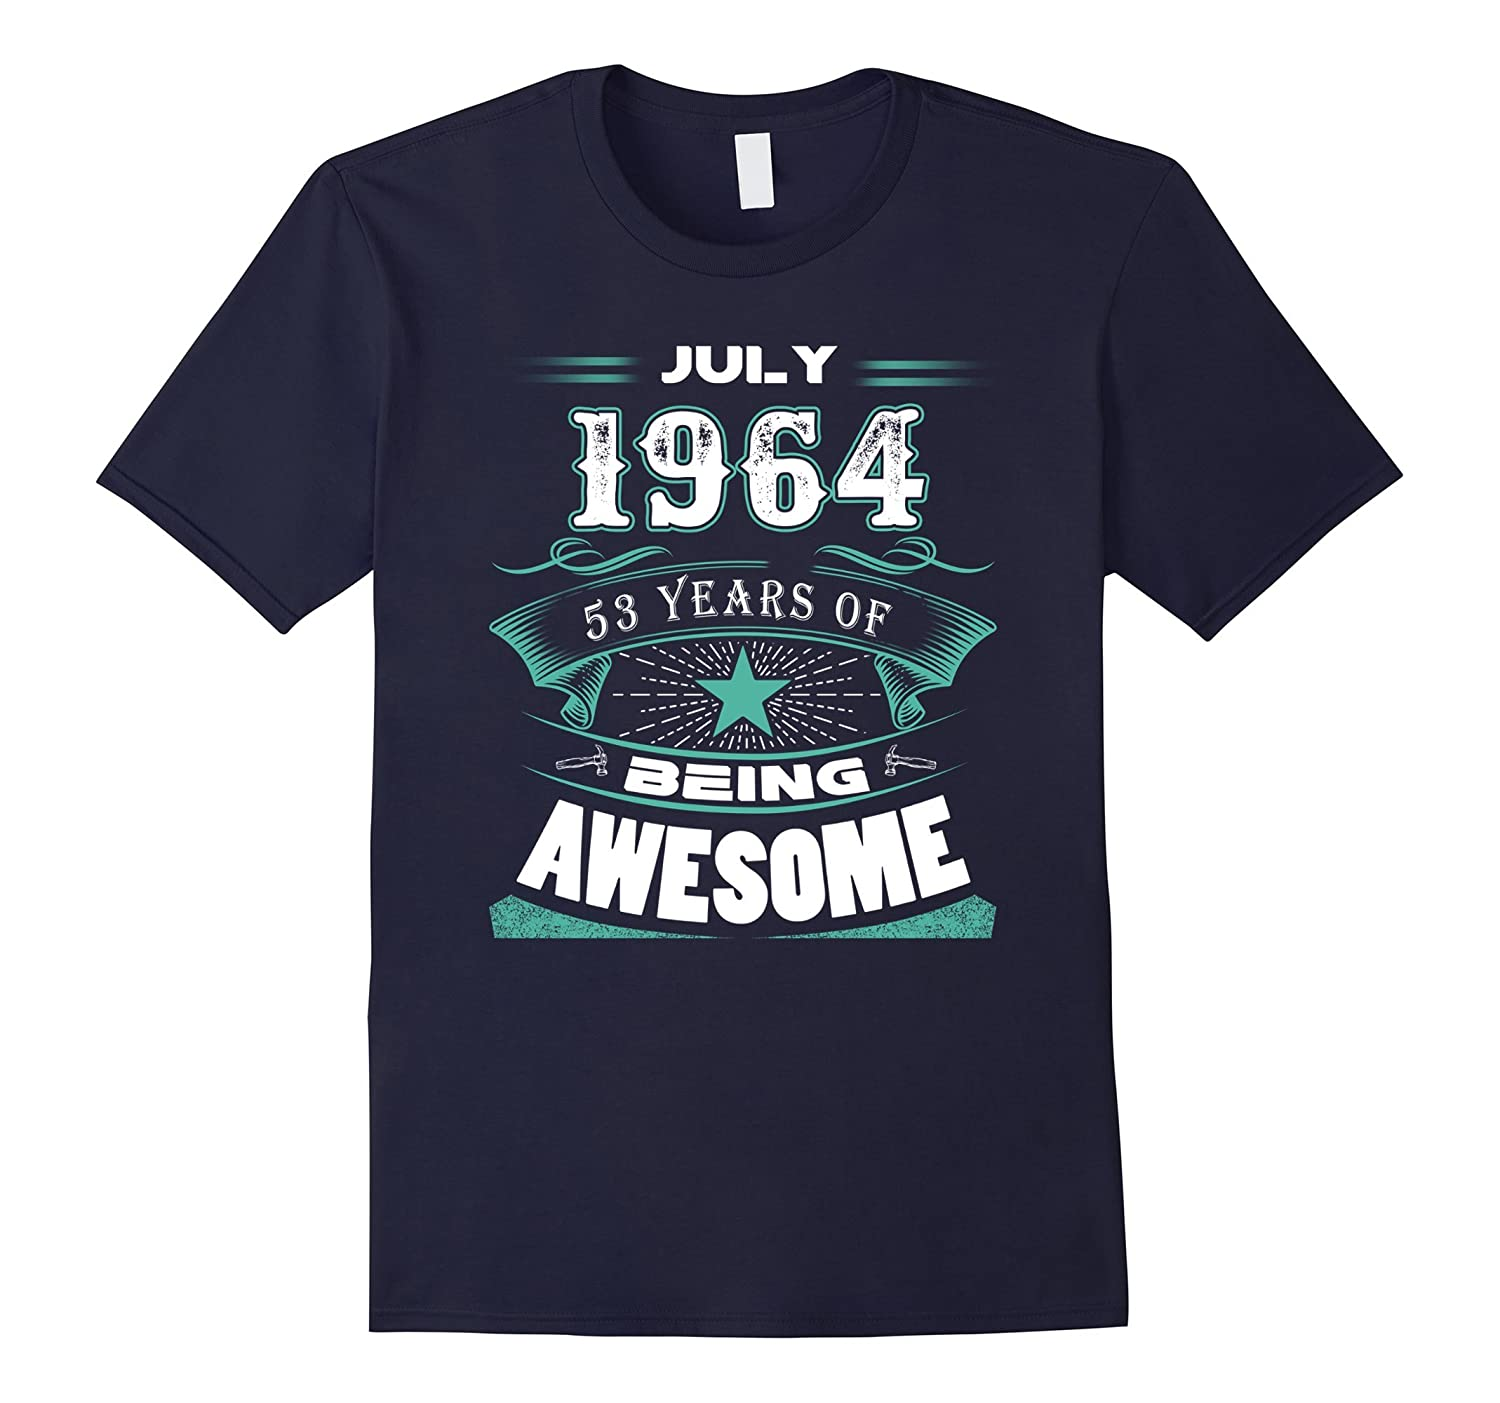 July 1964 - 53 years of being awesome-TD